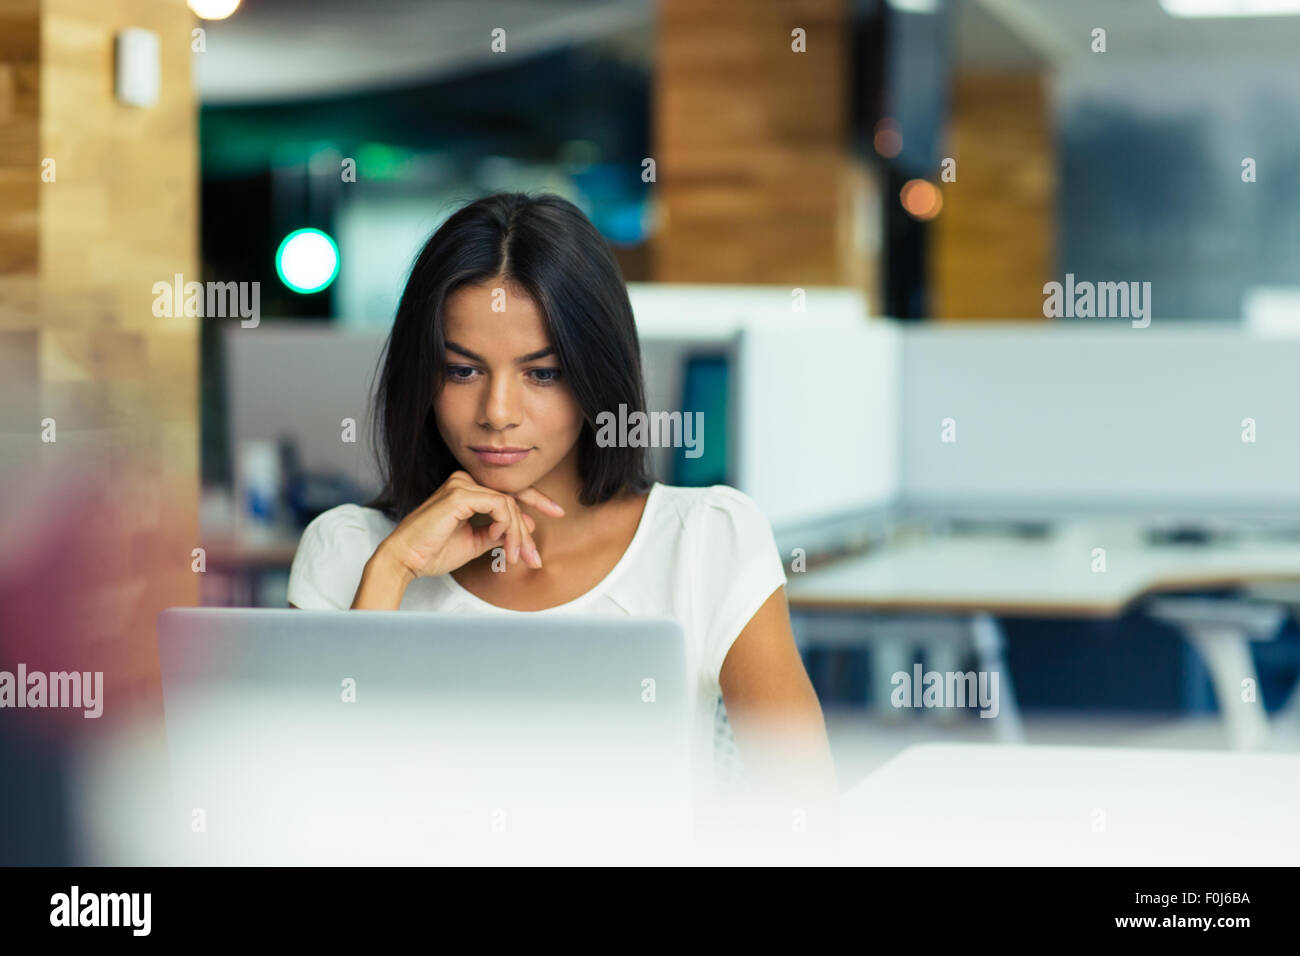 Portrait of a serious businesswoman using laptop in office Photo Stock